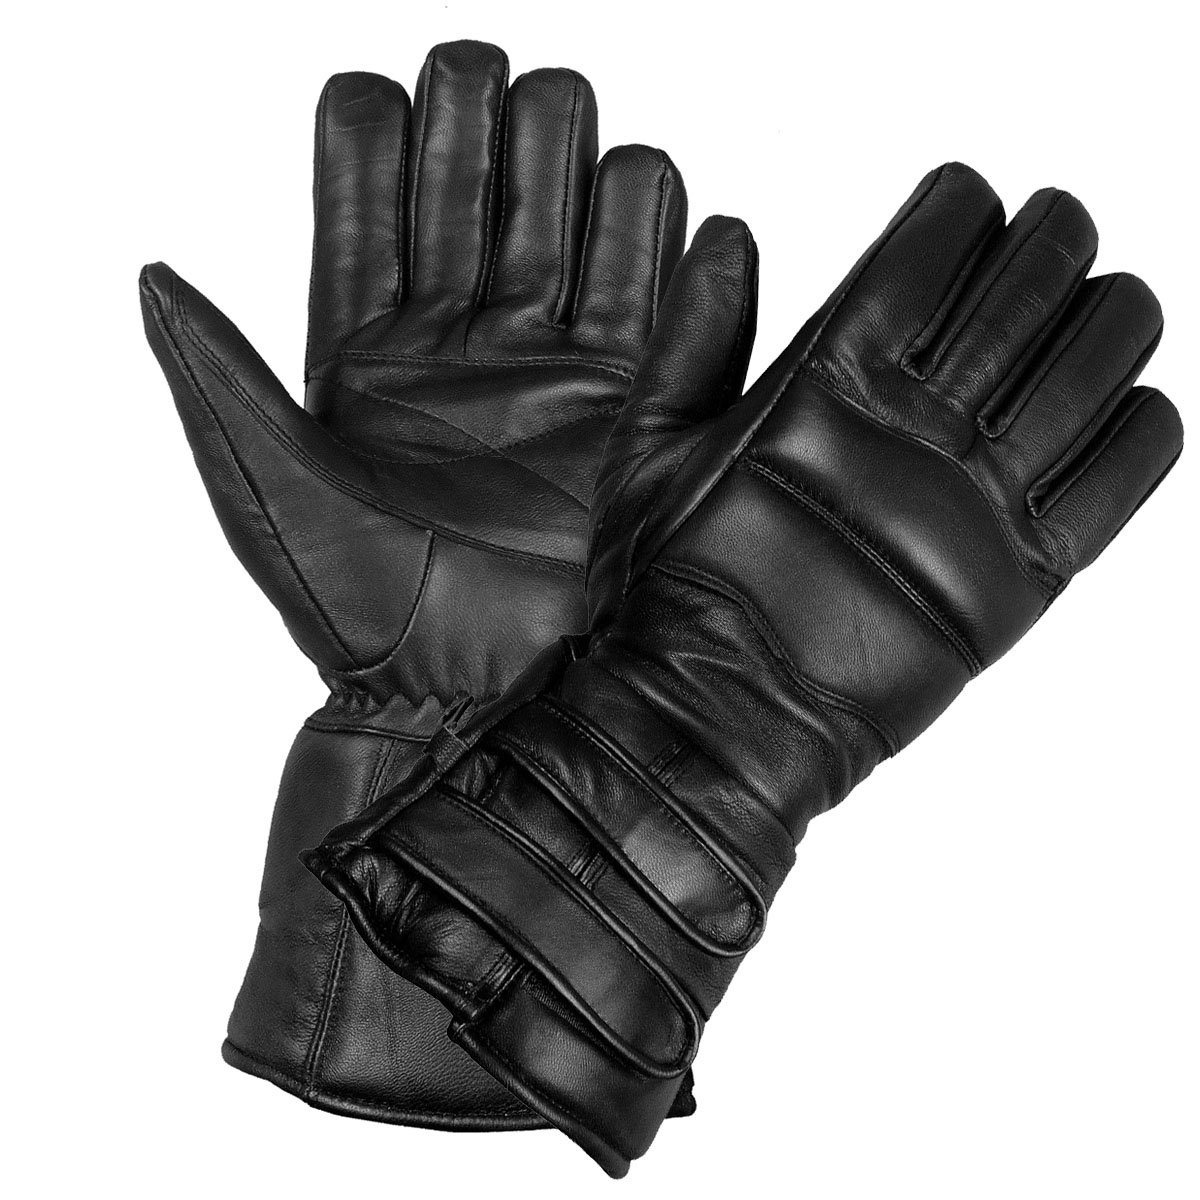 New Mens Thinsulate Sheep Leather Winter Motorcycle Biker Riding Gloves Black M